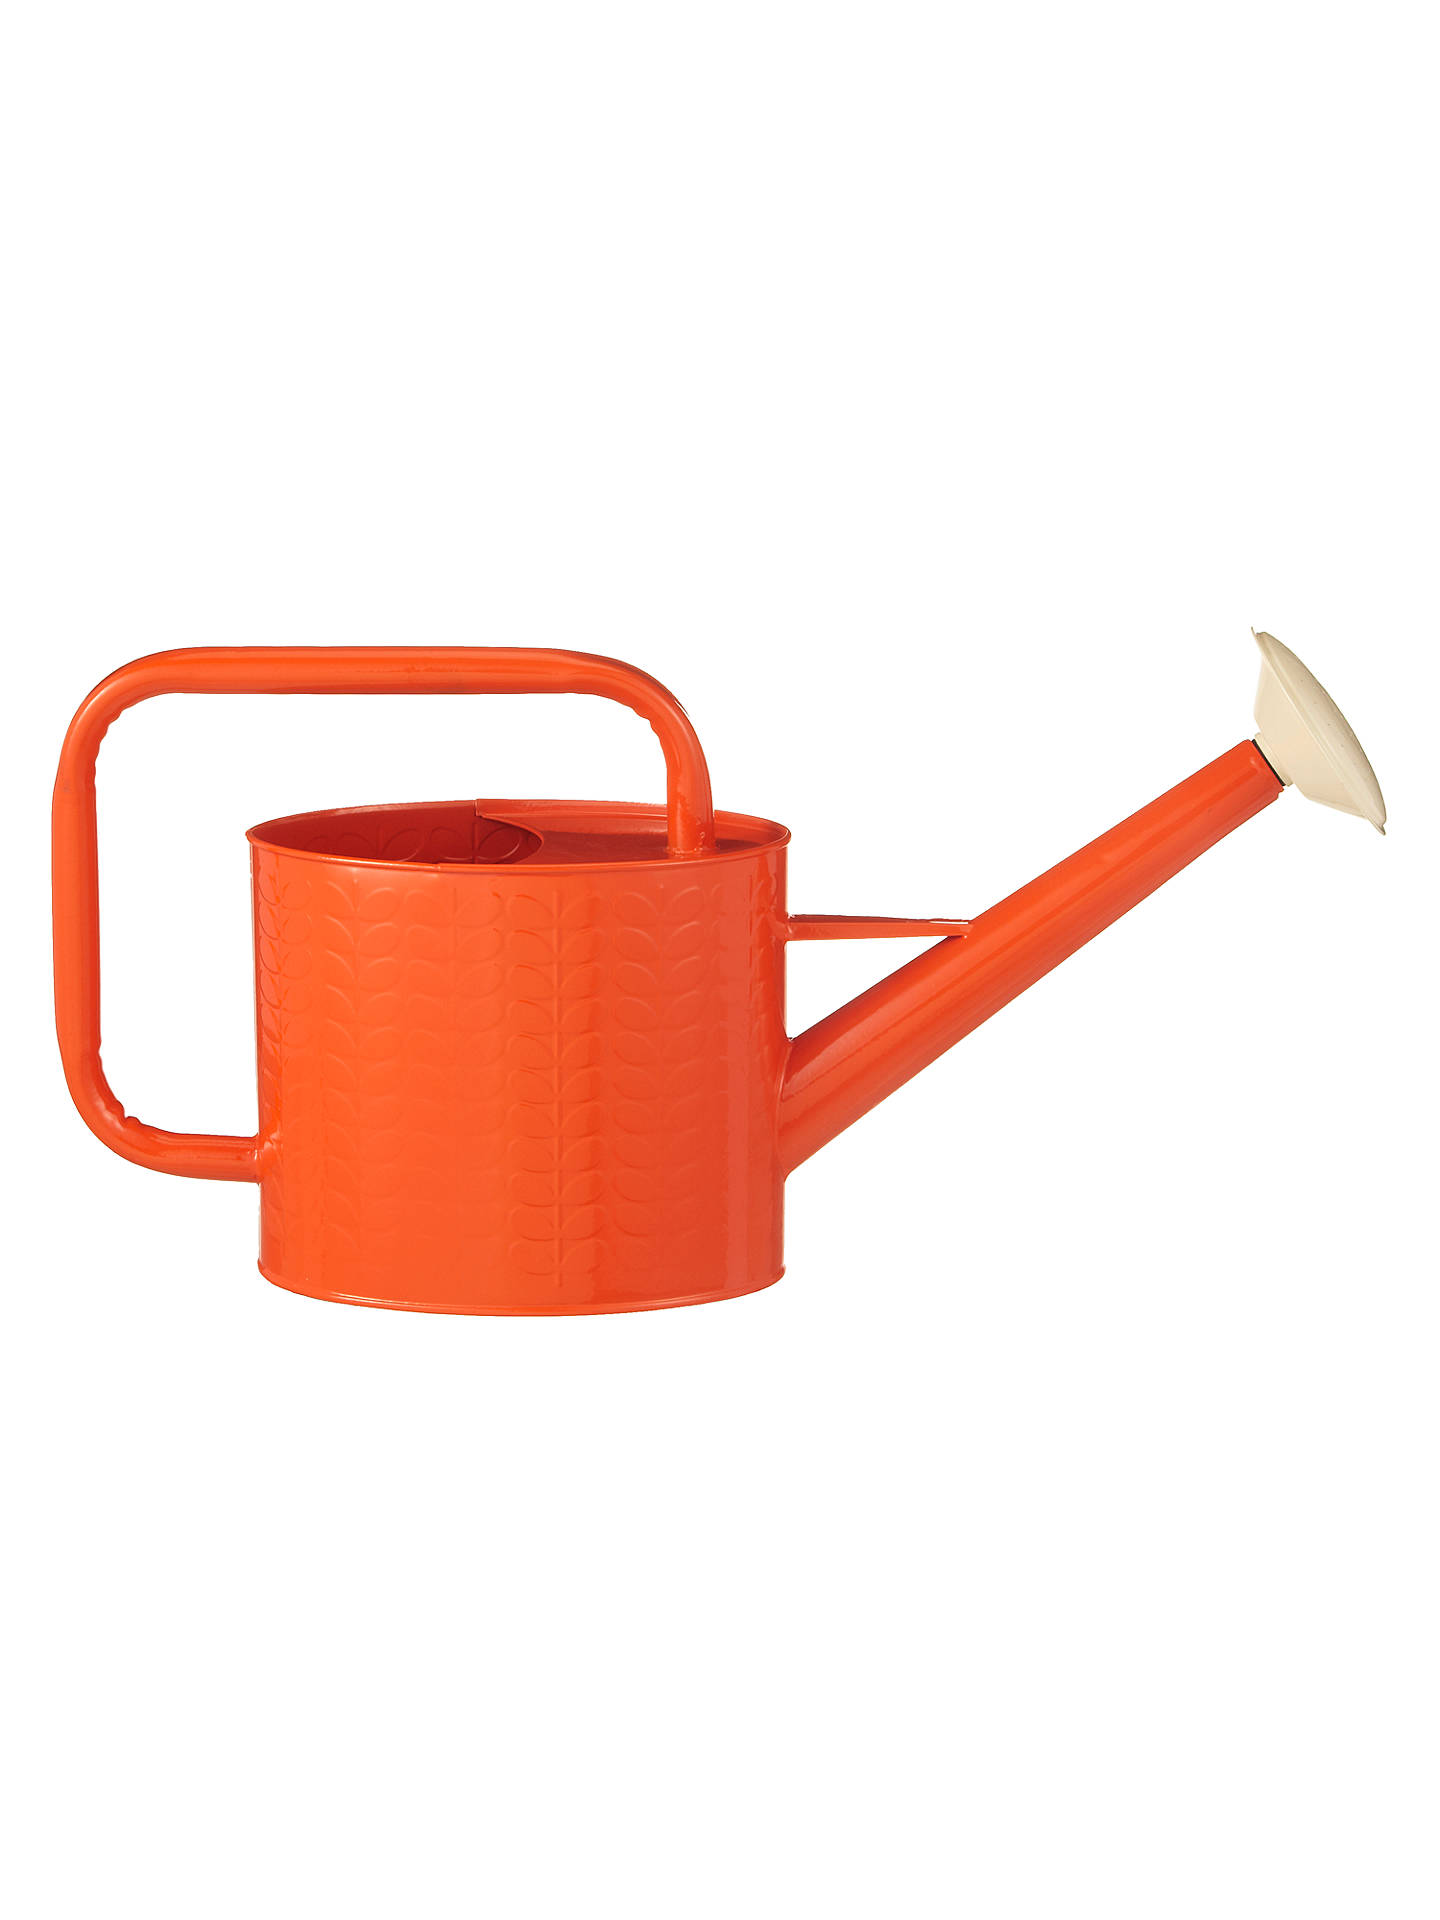 BuyOrla Kiely Watering Can, Orange Online at johnlewis.com